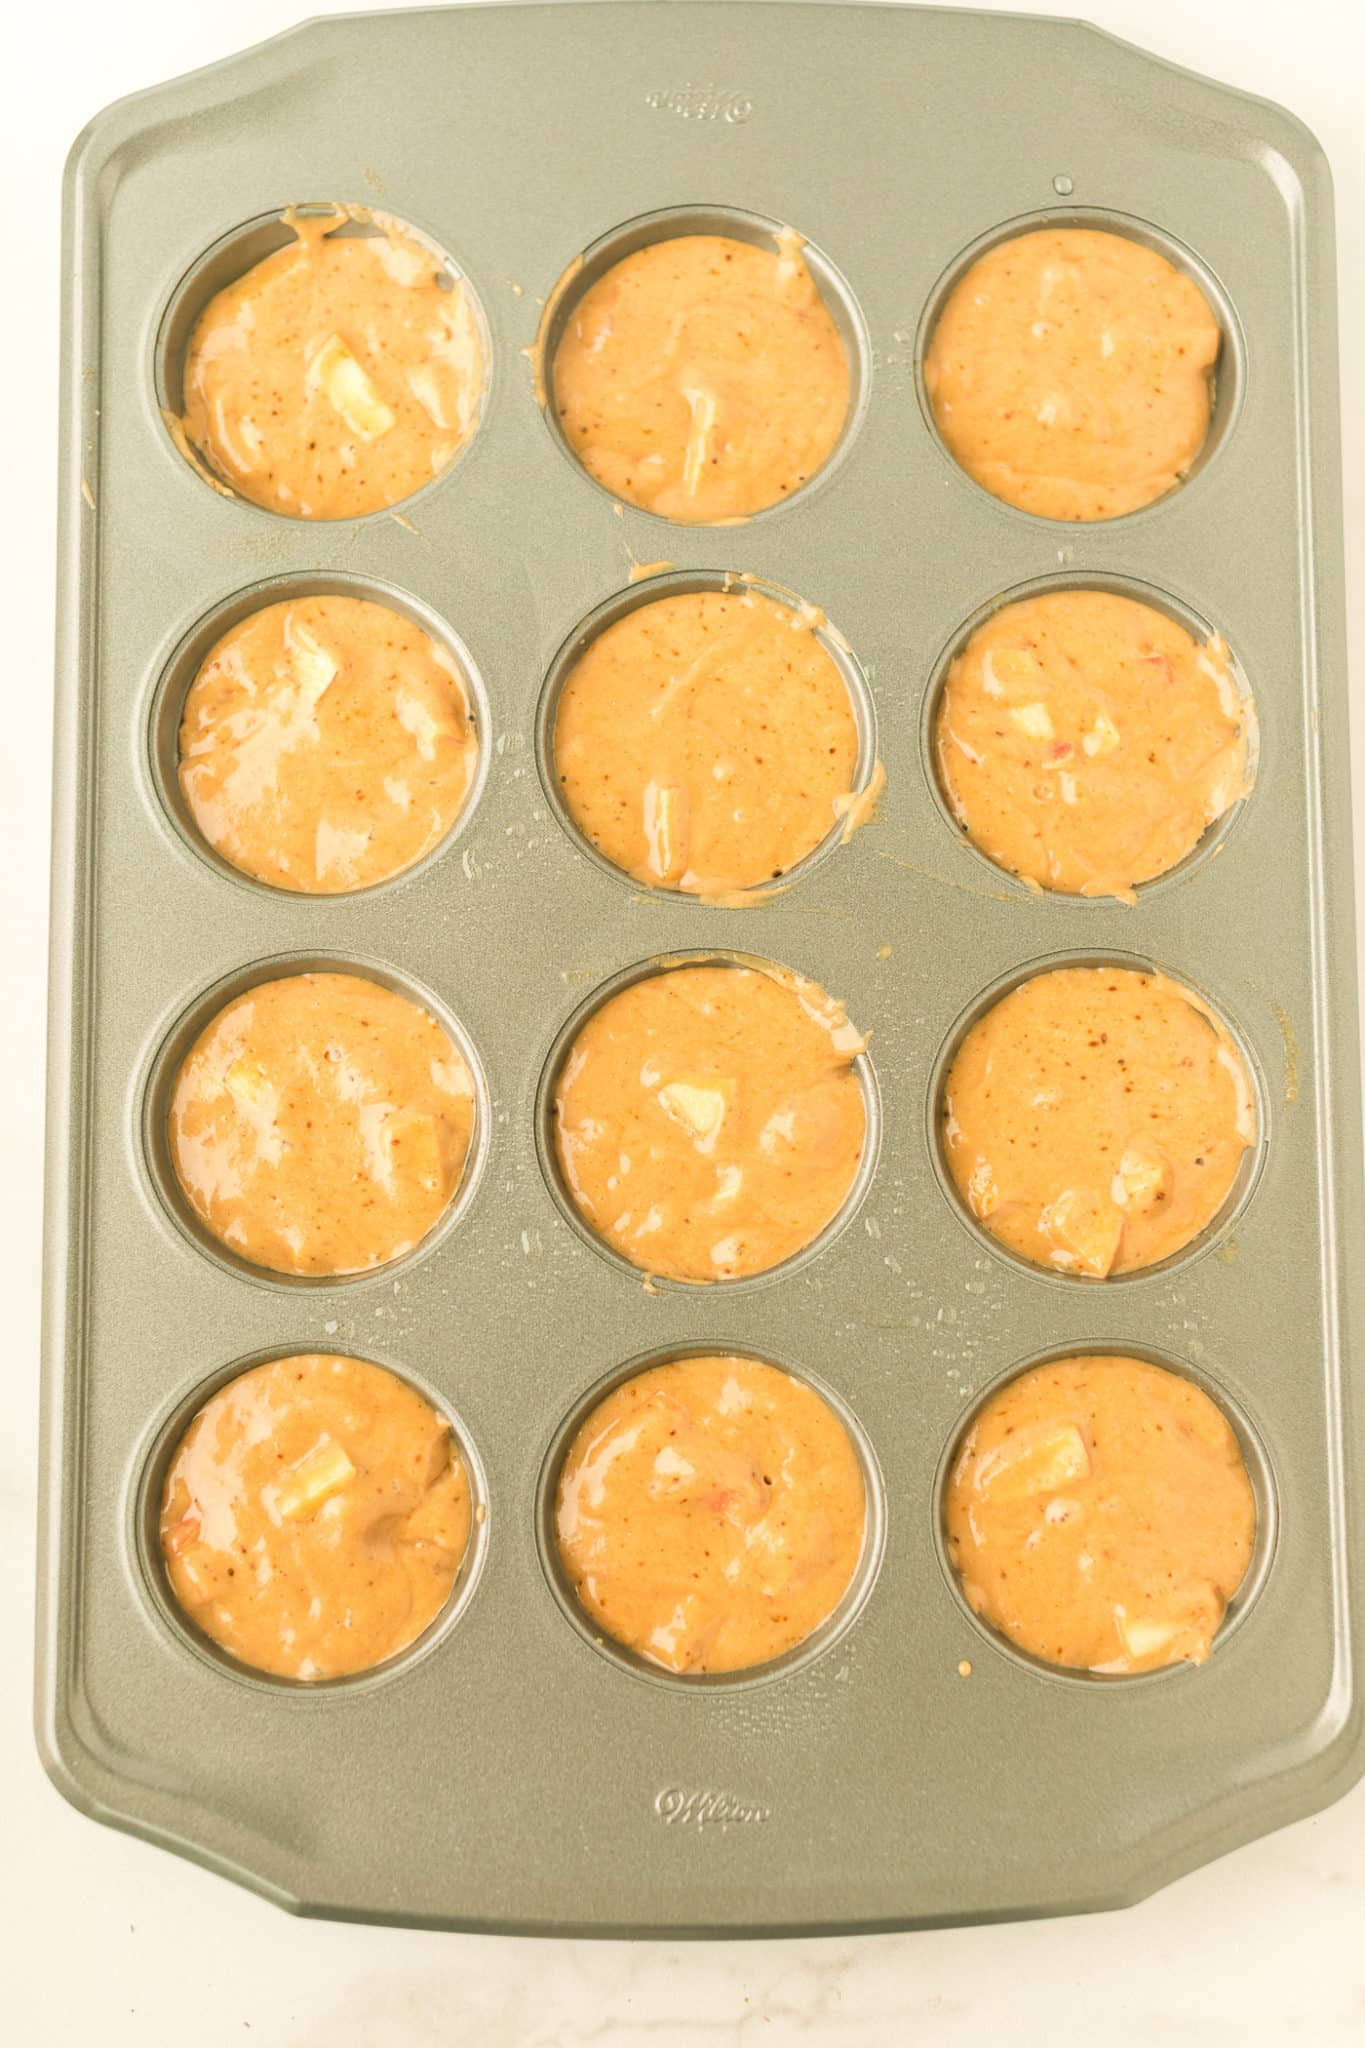 apple cider muffin batter in a muffin tray ready to be baked